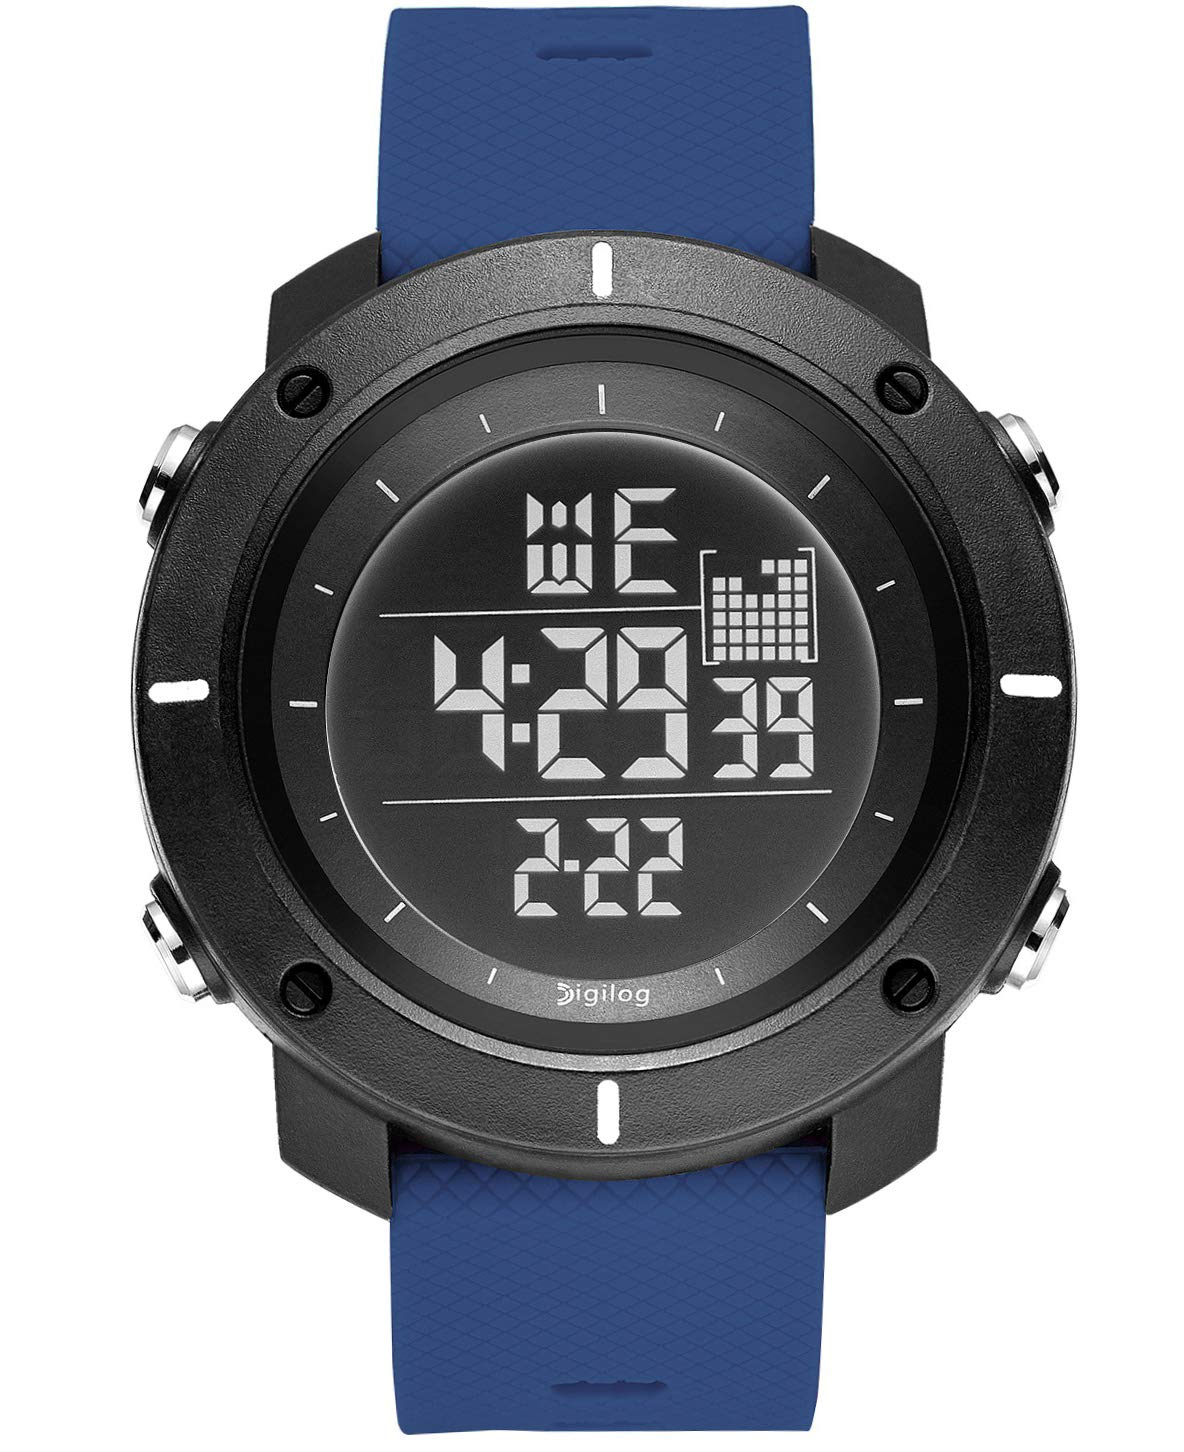 Digilog Force Midnight Black Activewear Classy Digital Multi Function Watch for Men & Boys (Blue) (B07Q9ZG4QG) Amazon Price History, Amazon Price Tracker